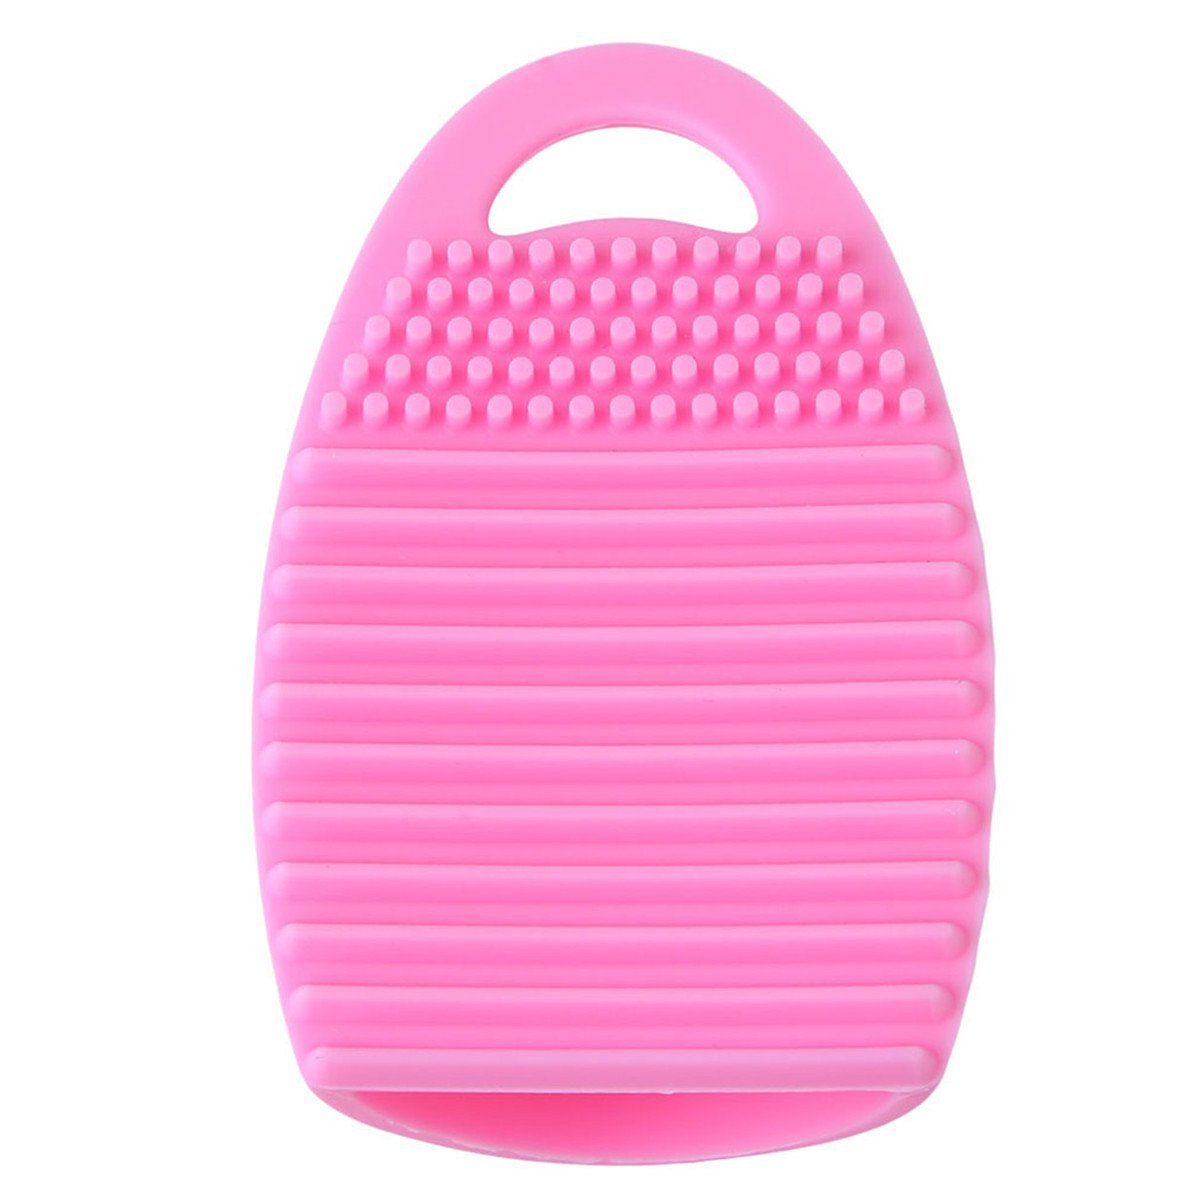 Edtoy Silicone Gel Makeup Washing Brush Cleaner Egg Scrubber Board Tool (Pink)